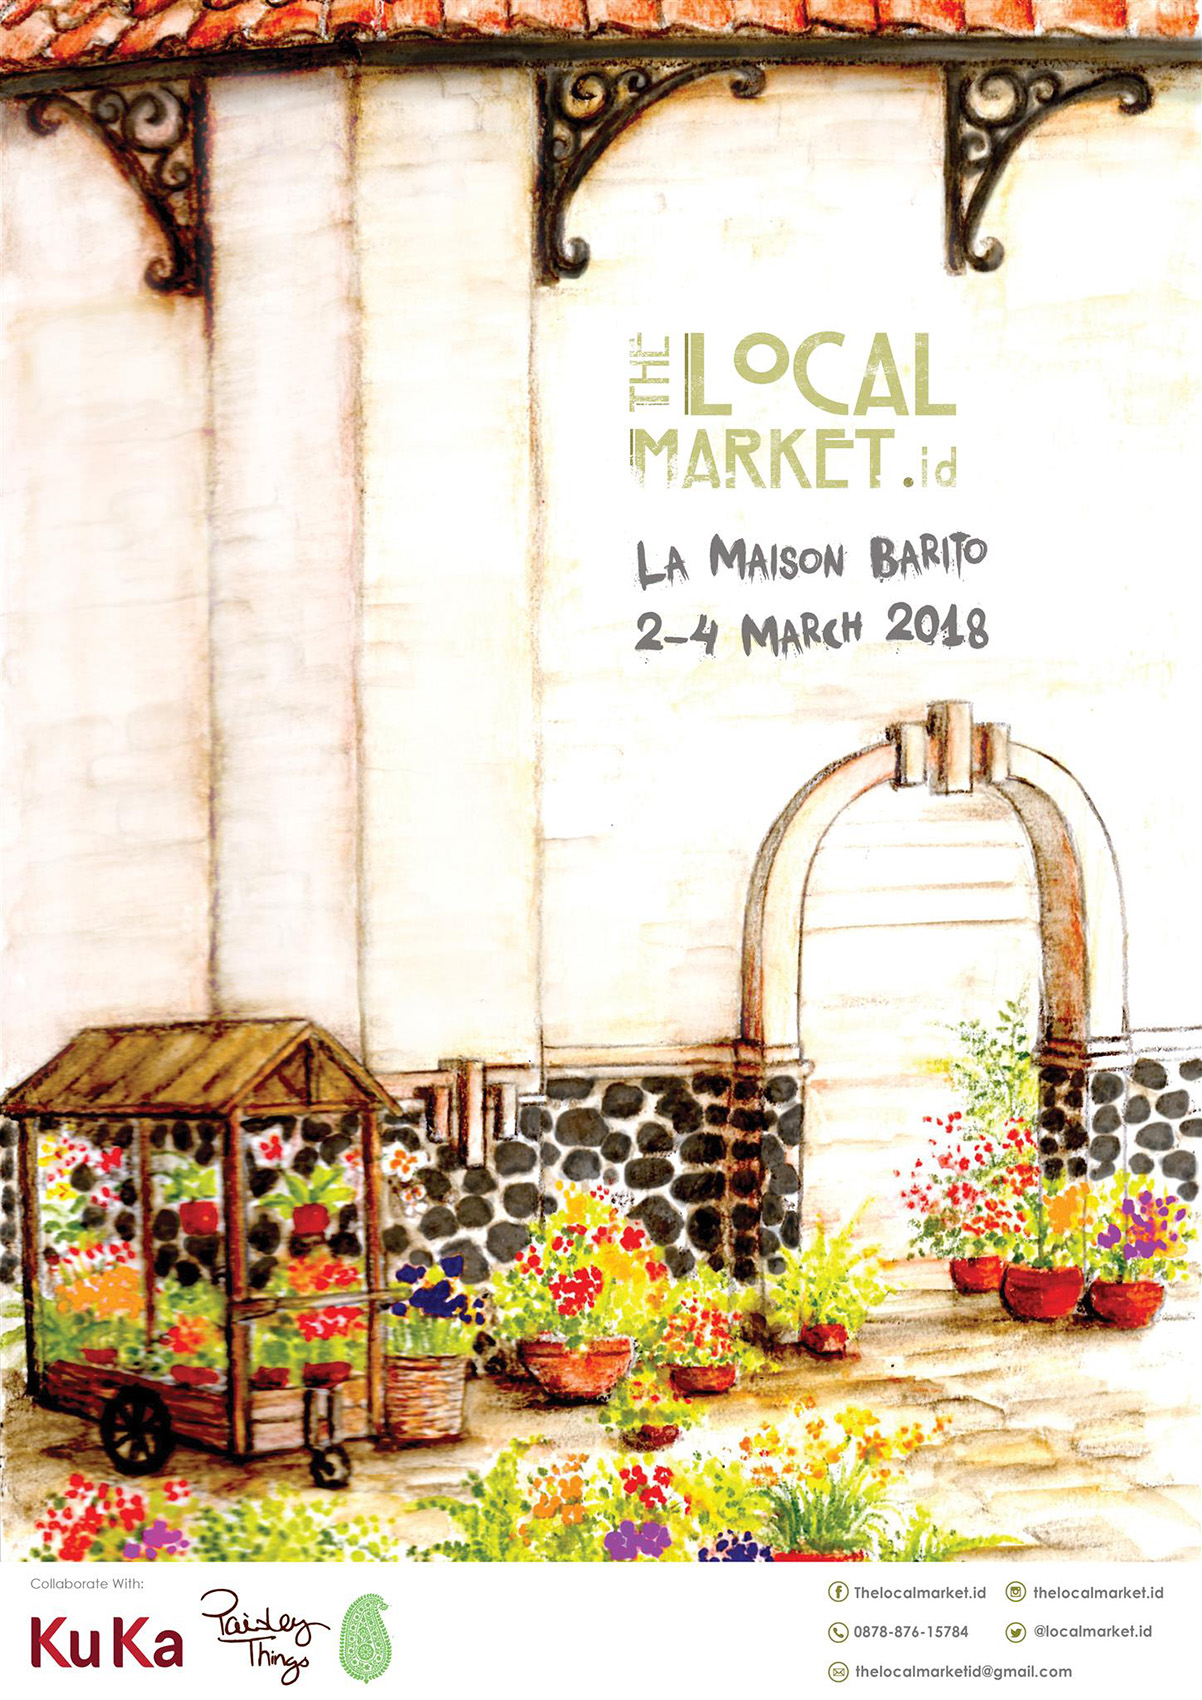 The Local Market @ La Maison Barito